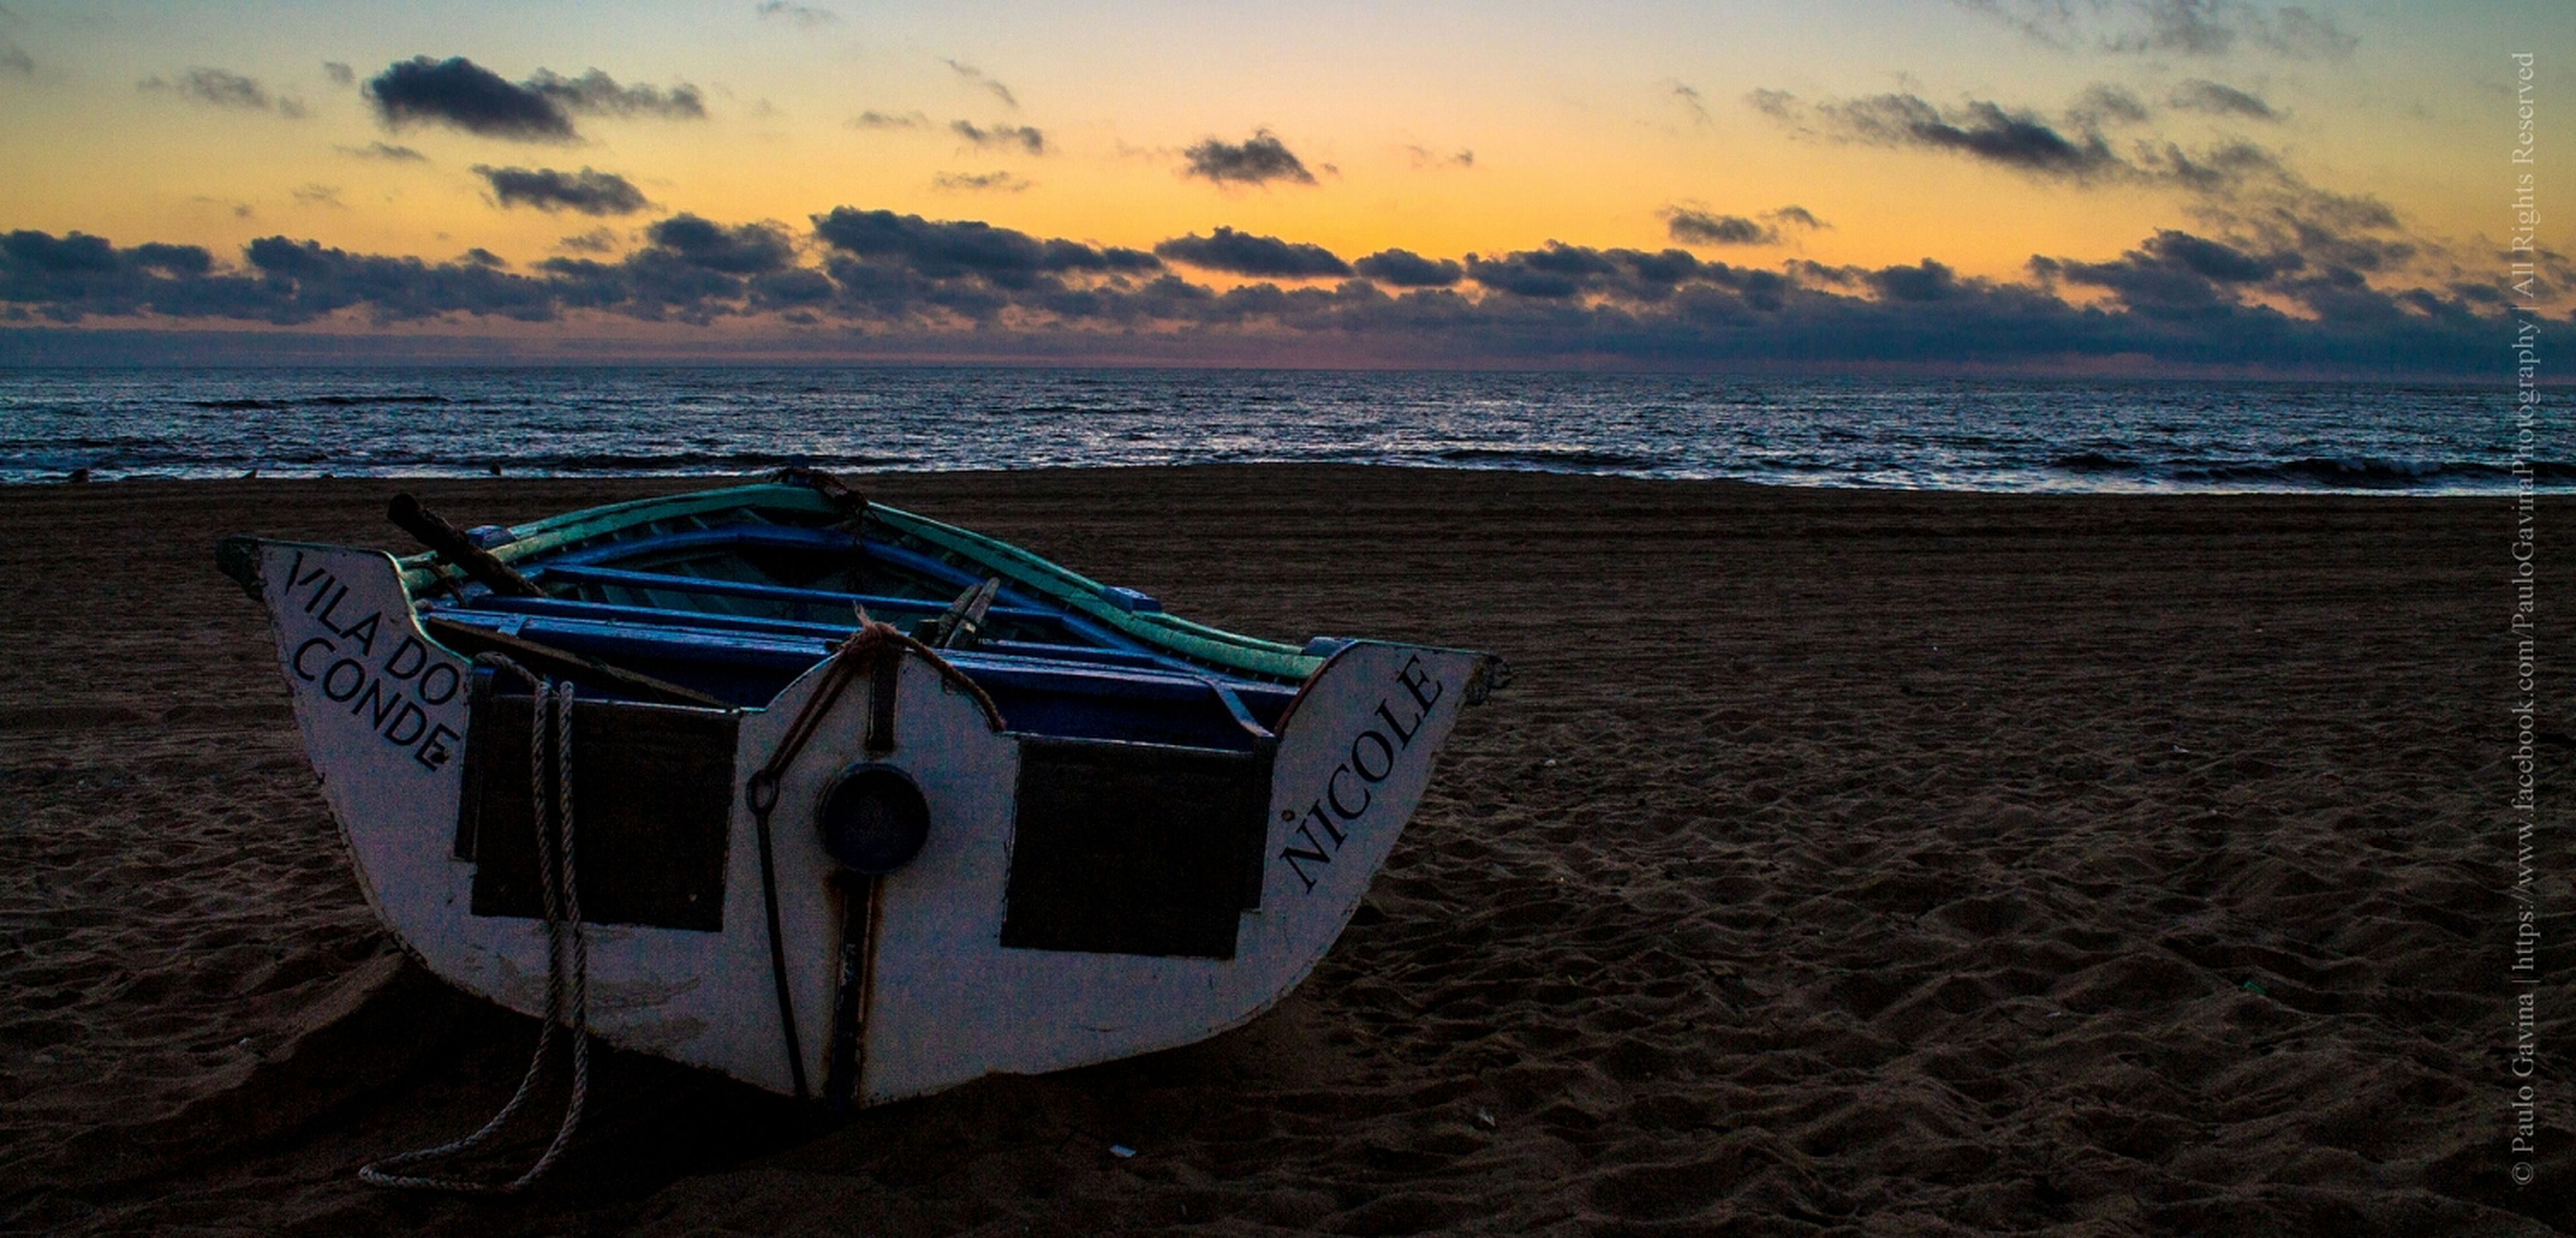 sea, horizon over water, sunset, water, beach, sky, tranquility, scenics, tranquil scene, shore, beauty in nature, orange color, nature, idyllic, sand, cloud - sky, nautical vessel, transportation, boat, cloud